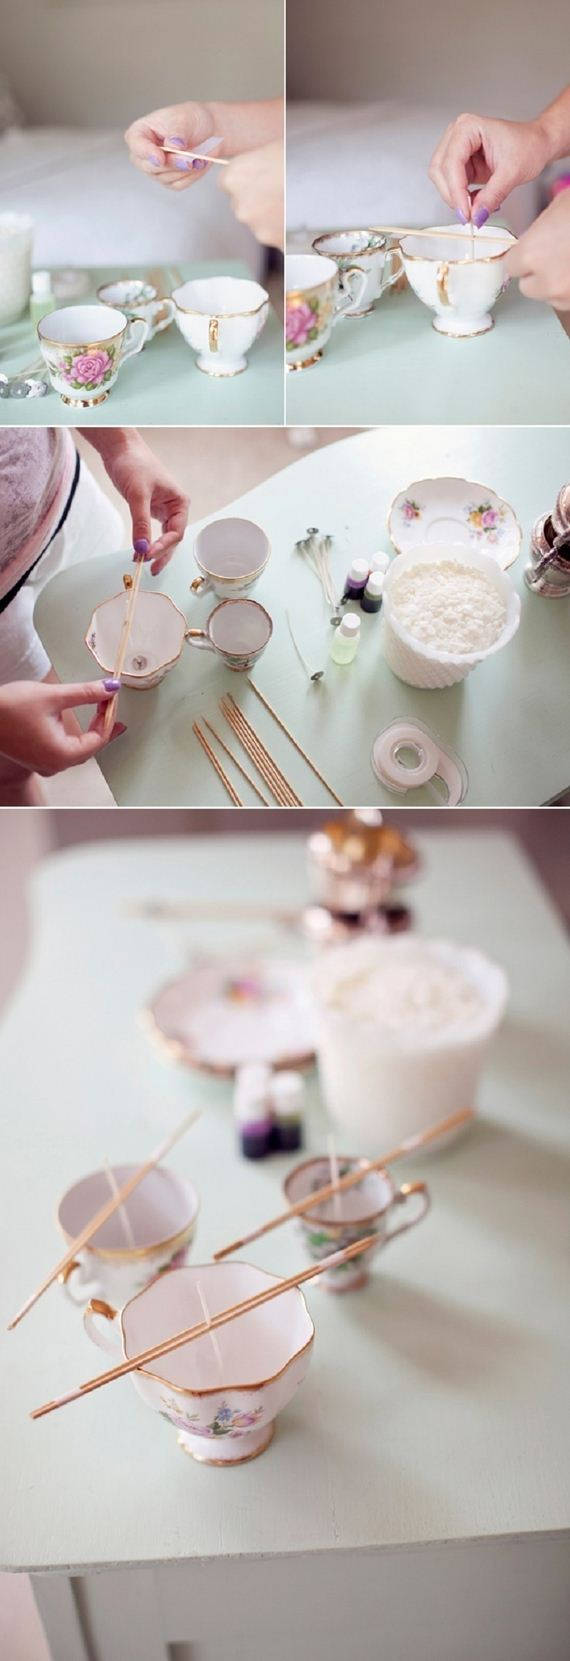 09-diy-home-decor